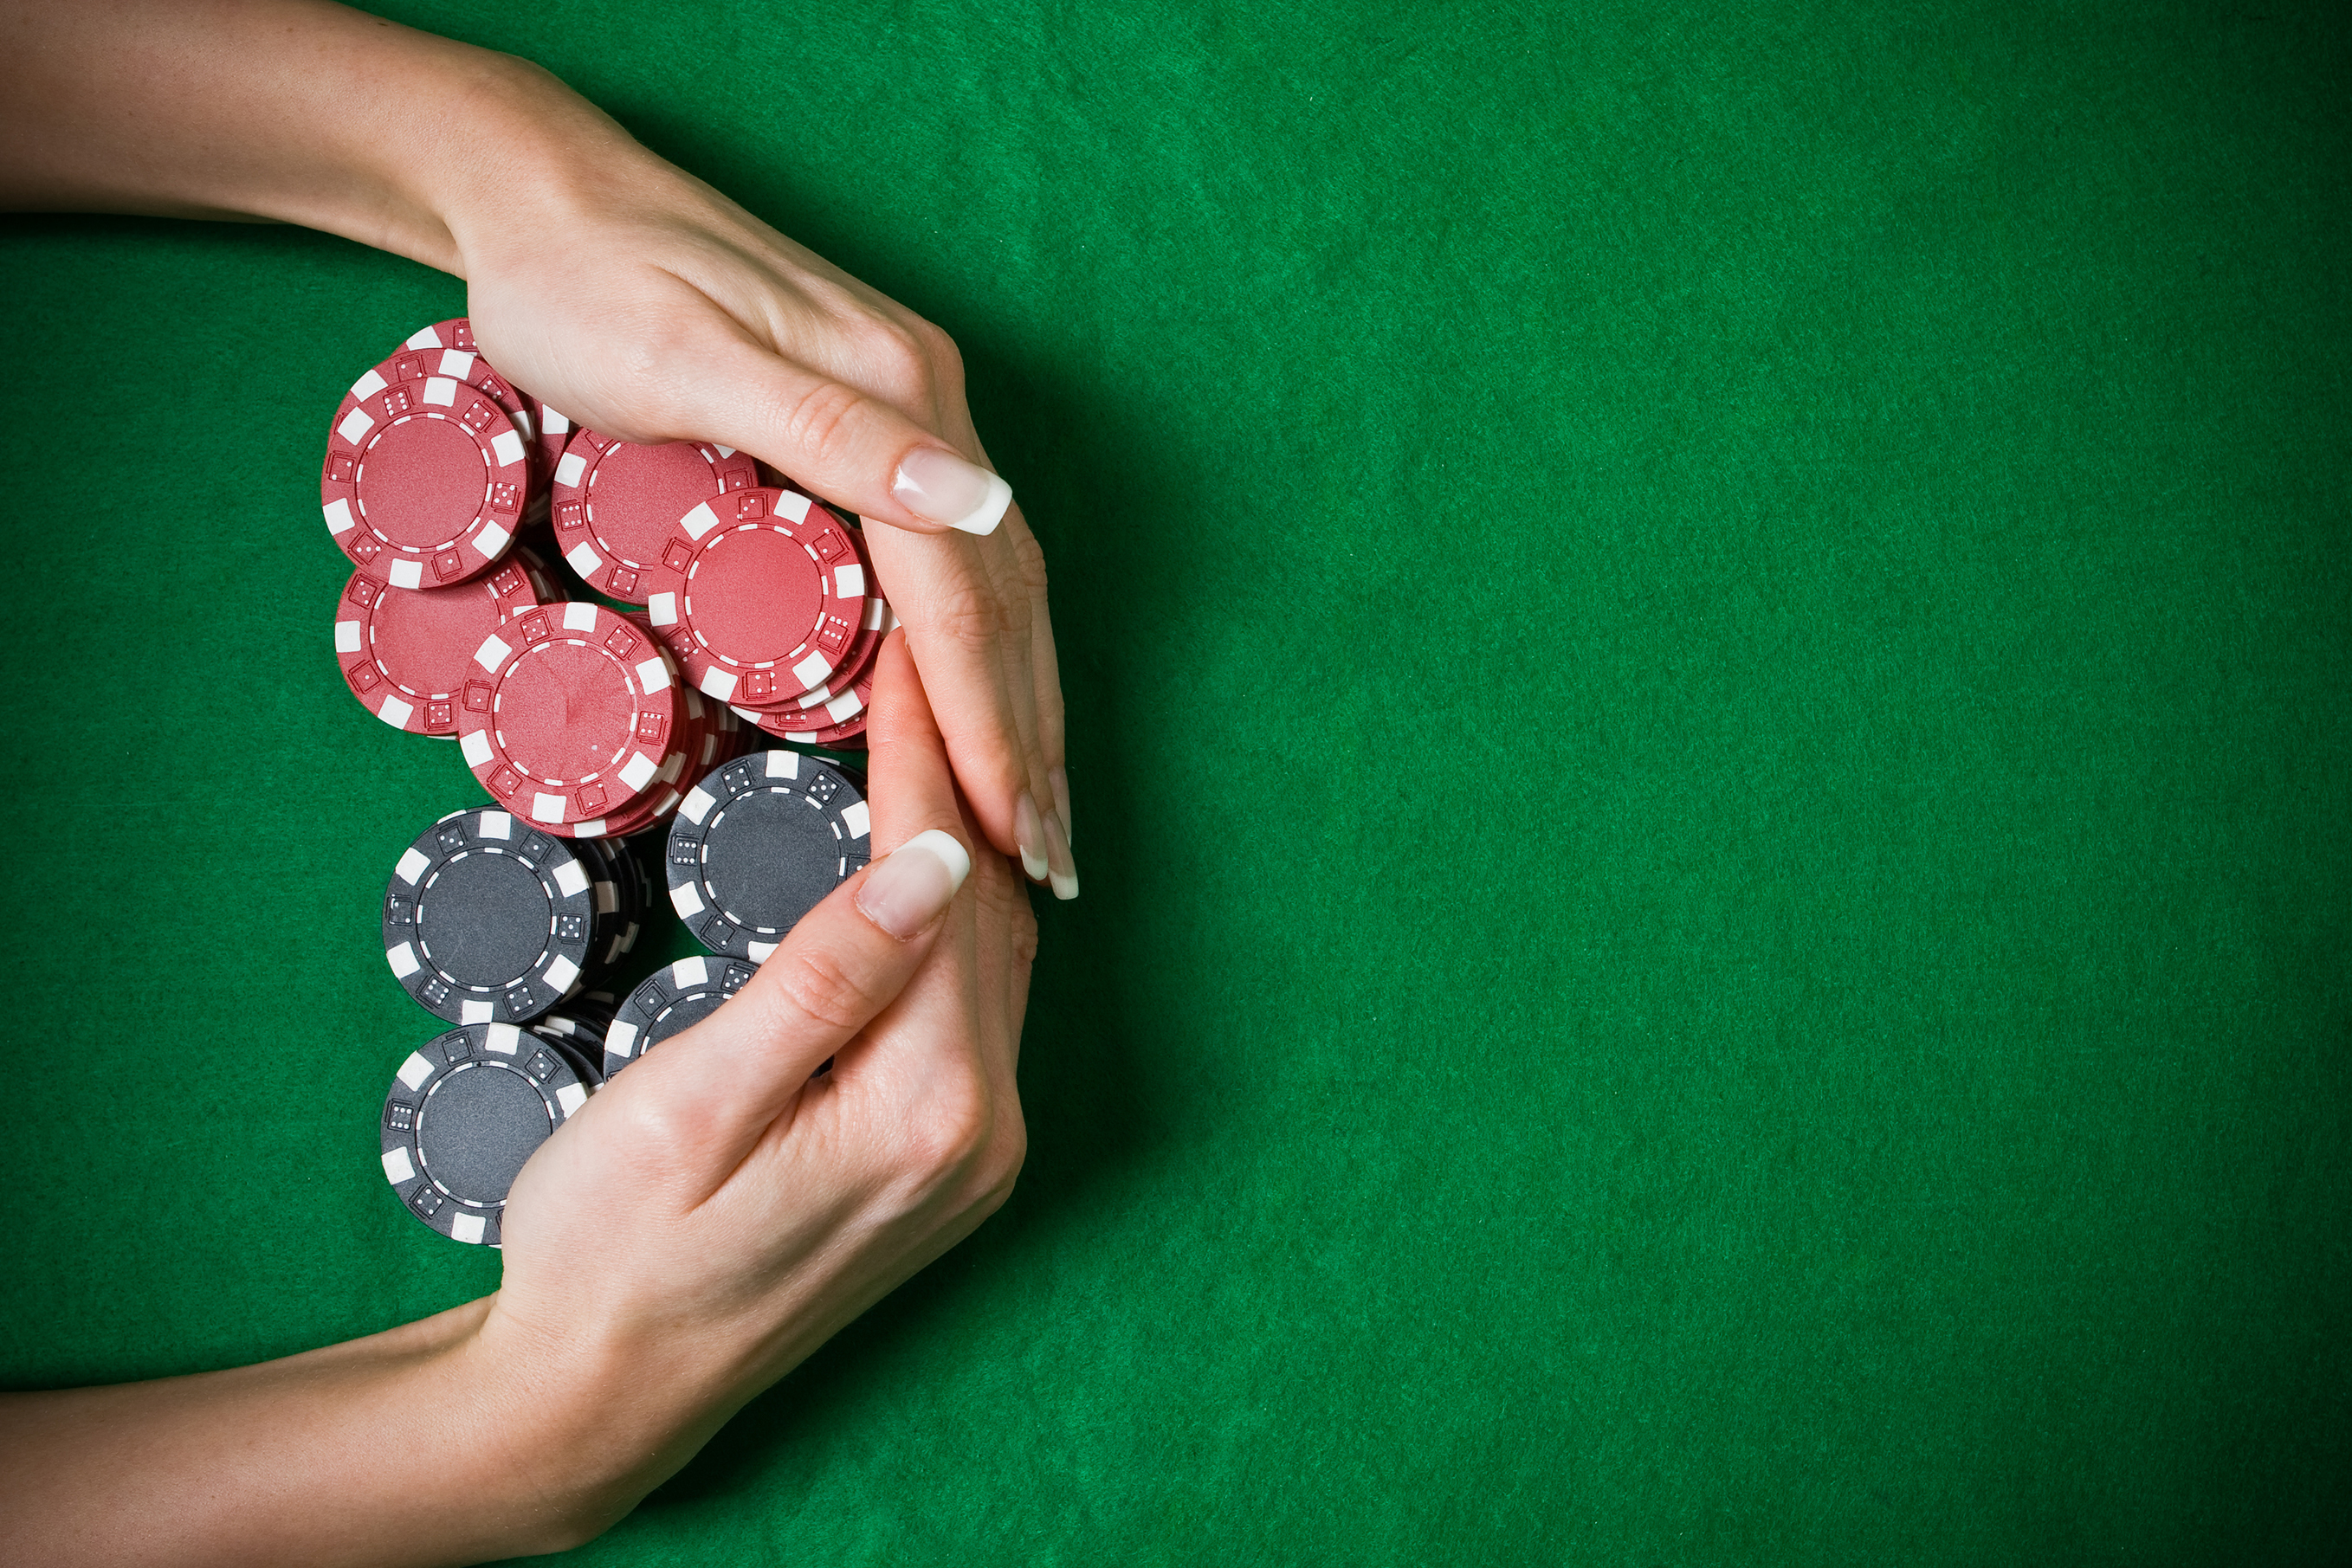 Which Casino Online Offers the Best Payout to its Players?